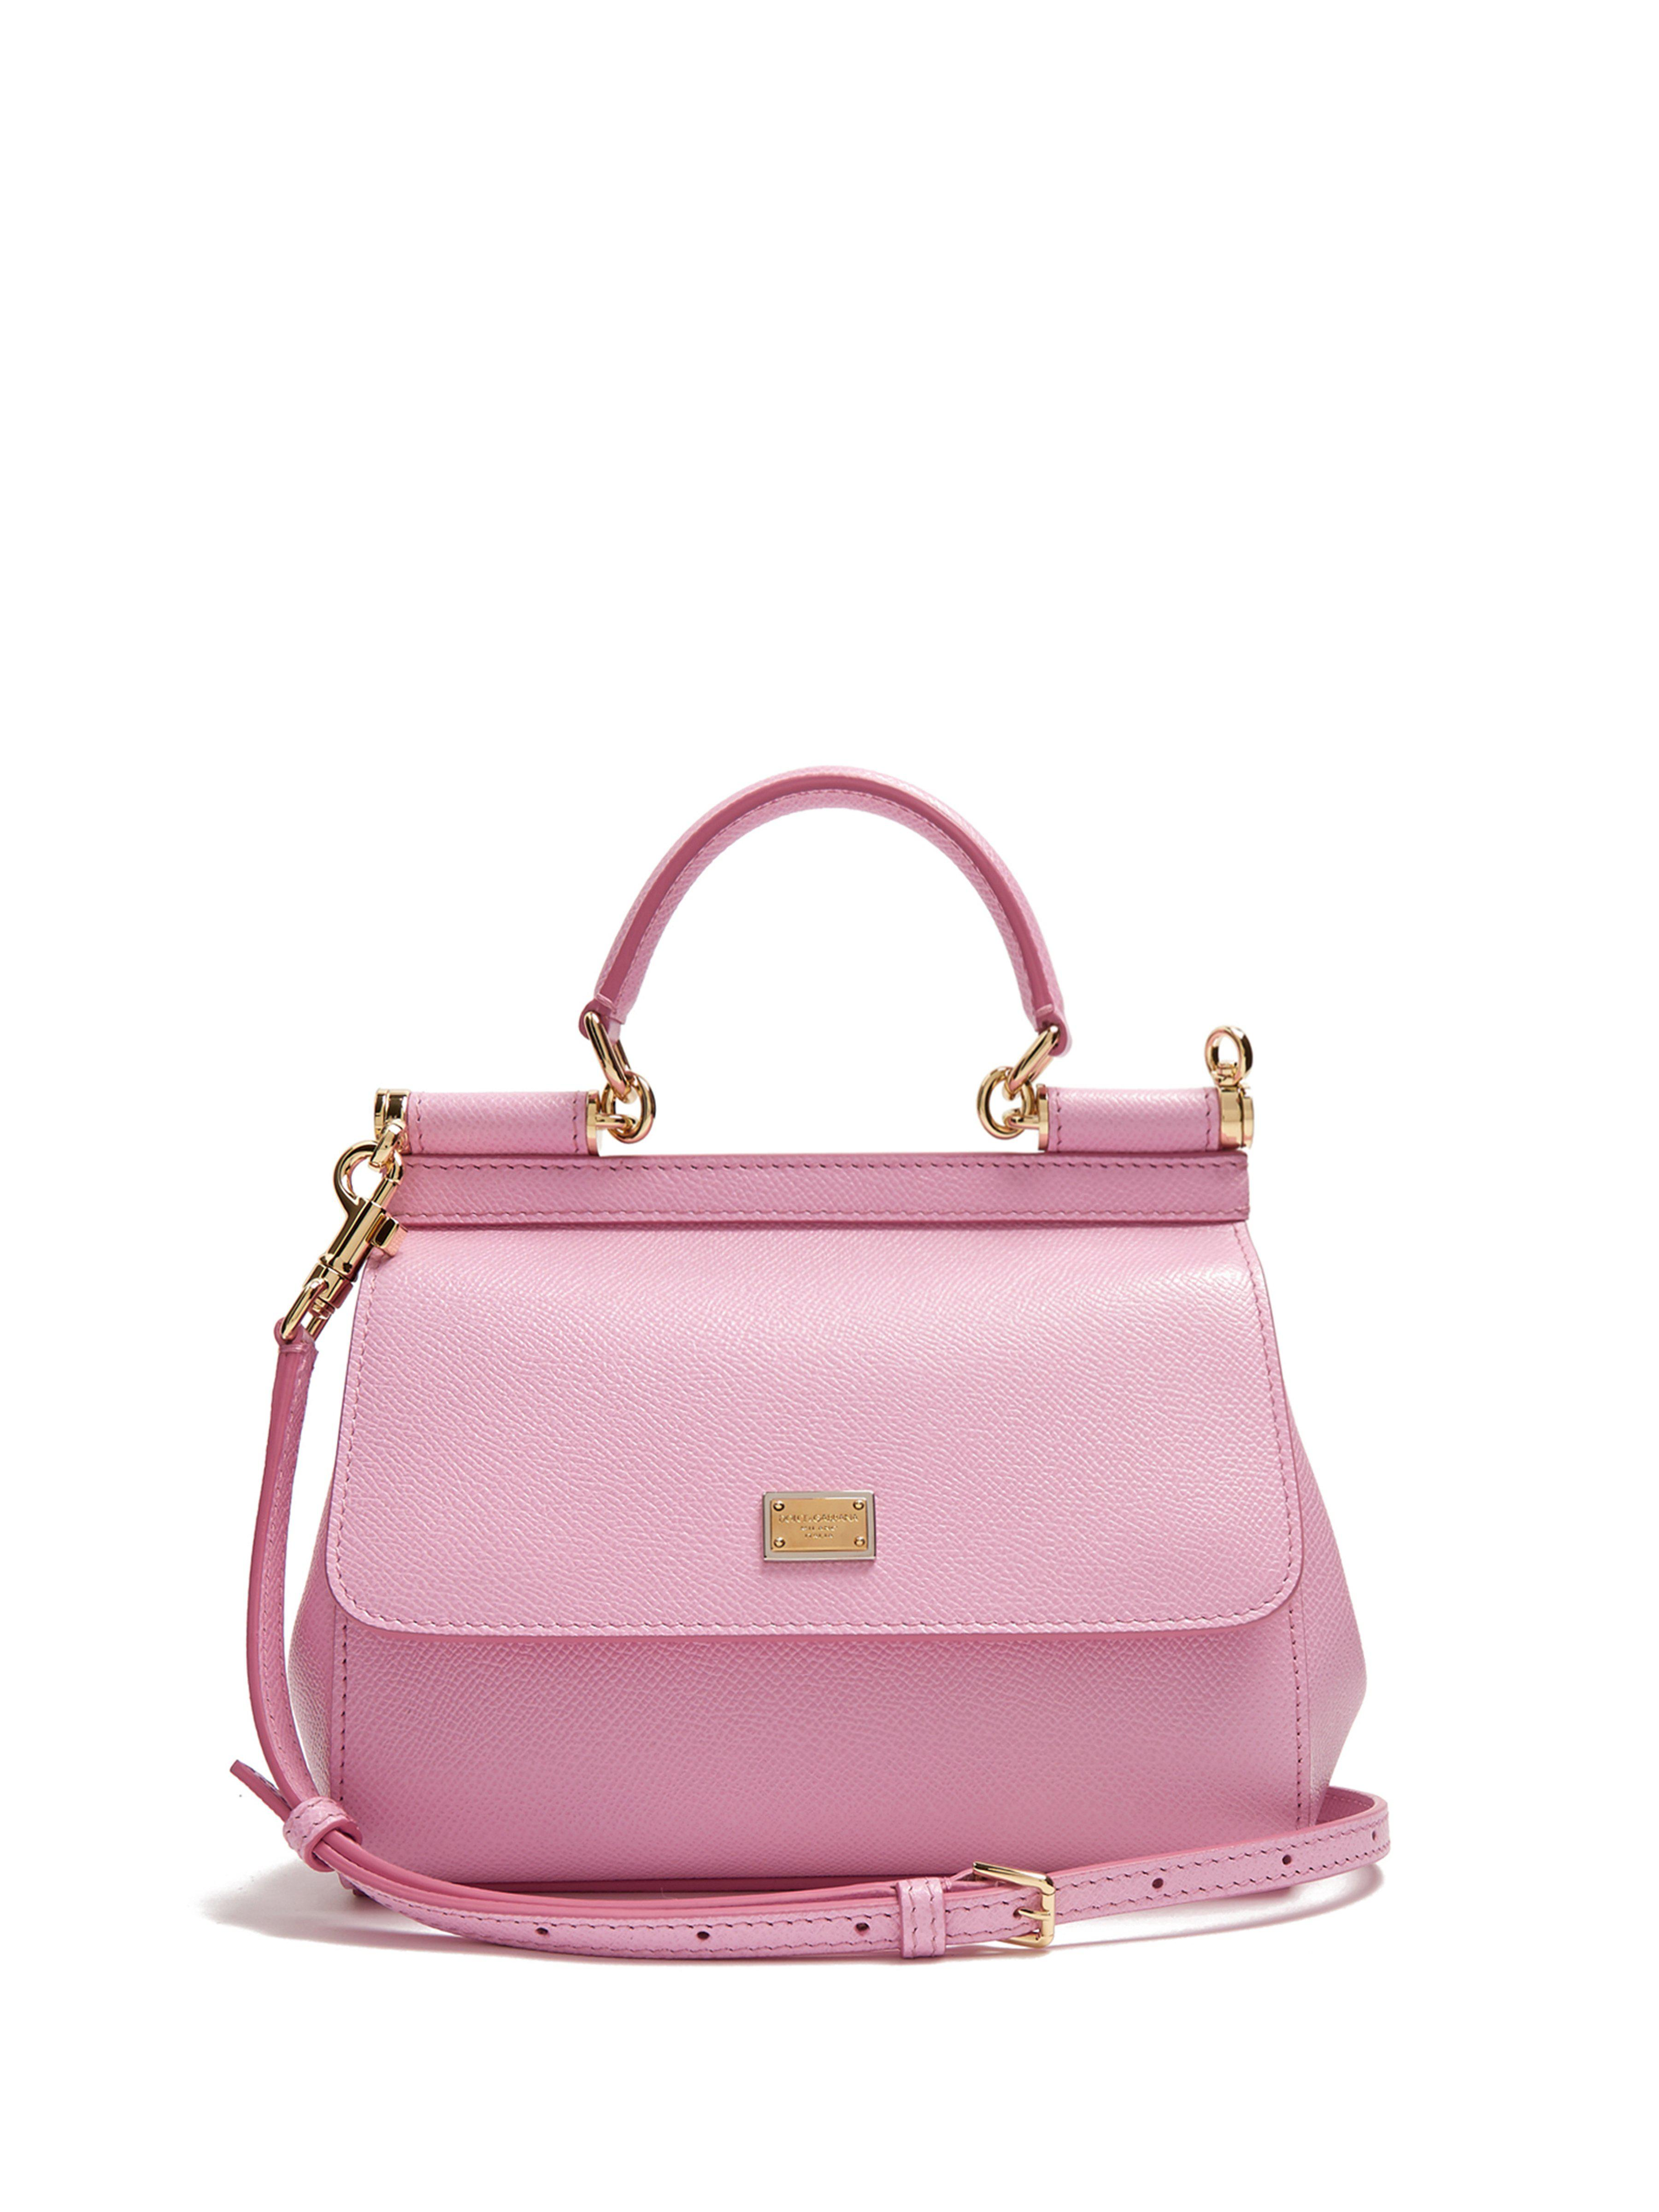 ad819d5b34 Dolce   Gabbana Sicily Small Dauphine Leather Bag in Pink - Save 7 ...